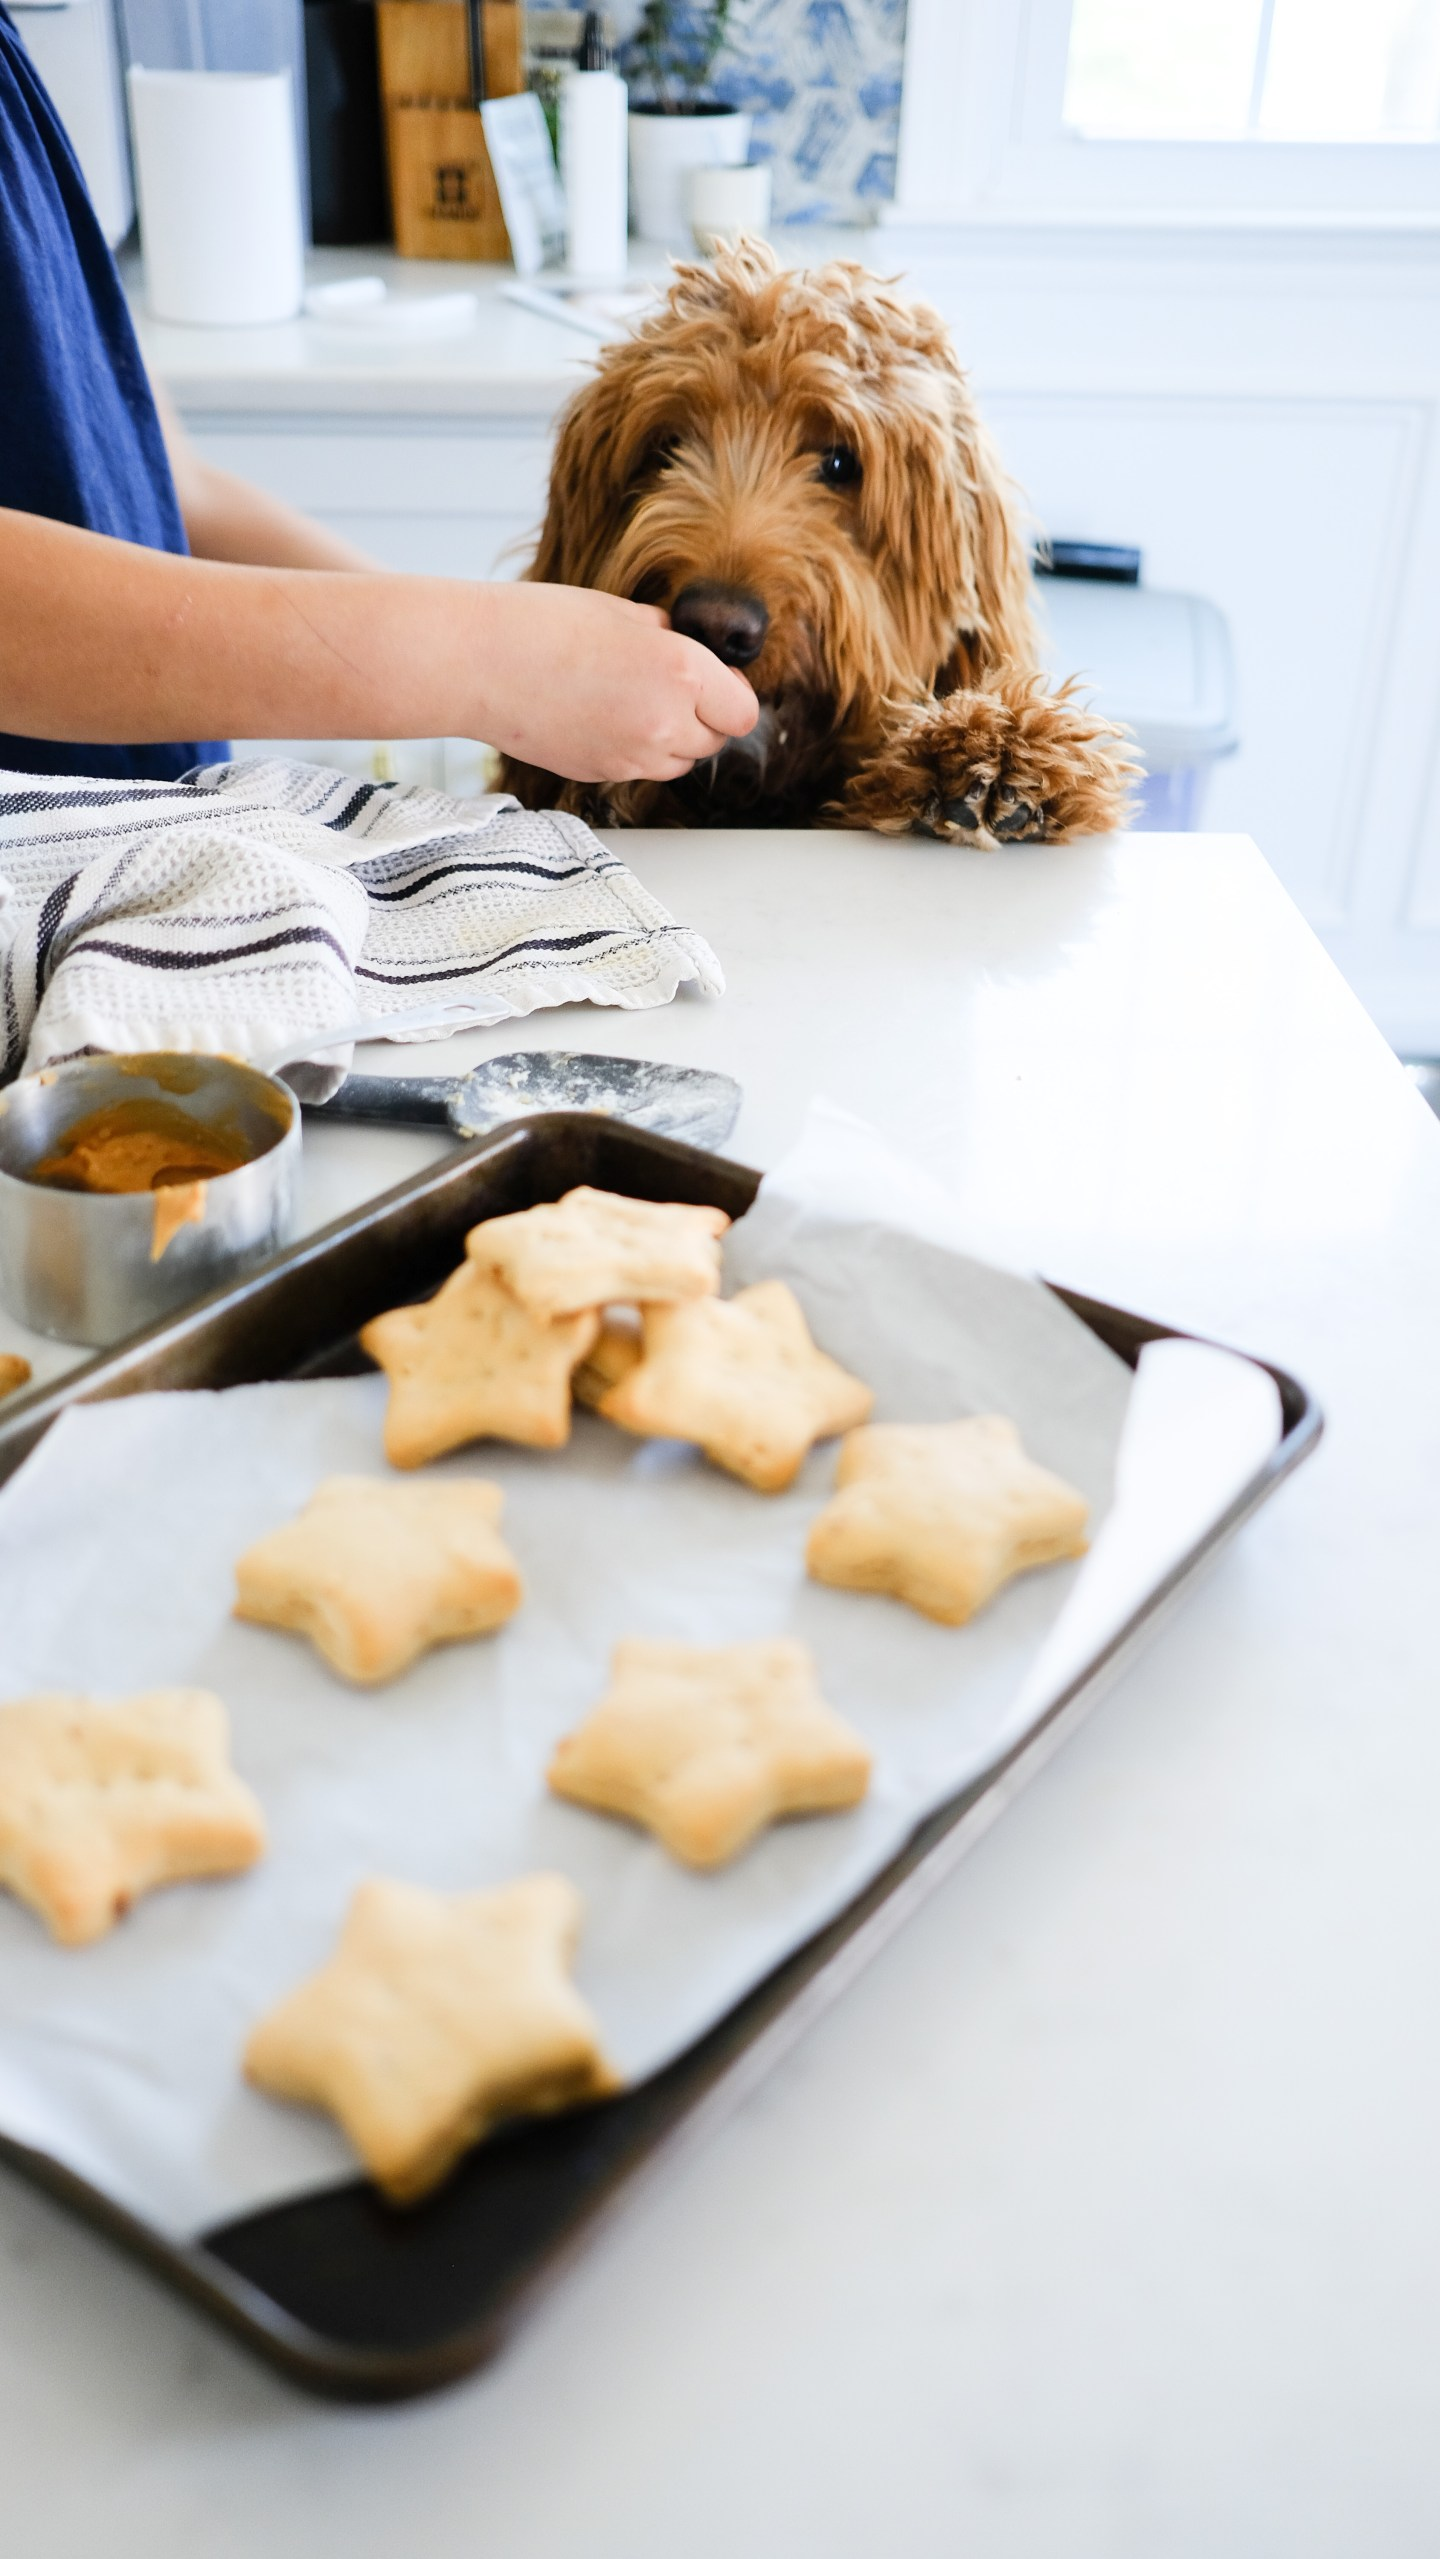 Chocolate and Lace shares her recipe for star shaped peanut butter dog treats.